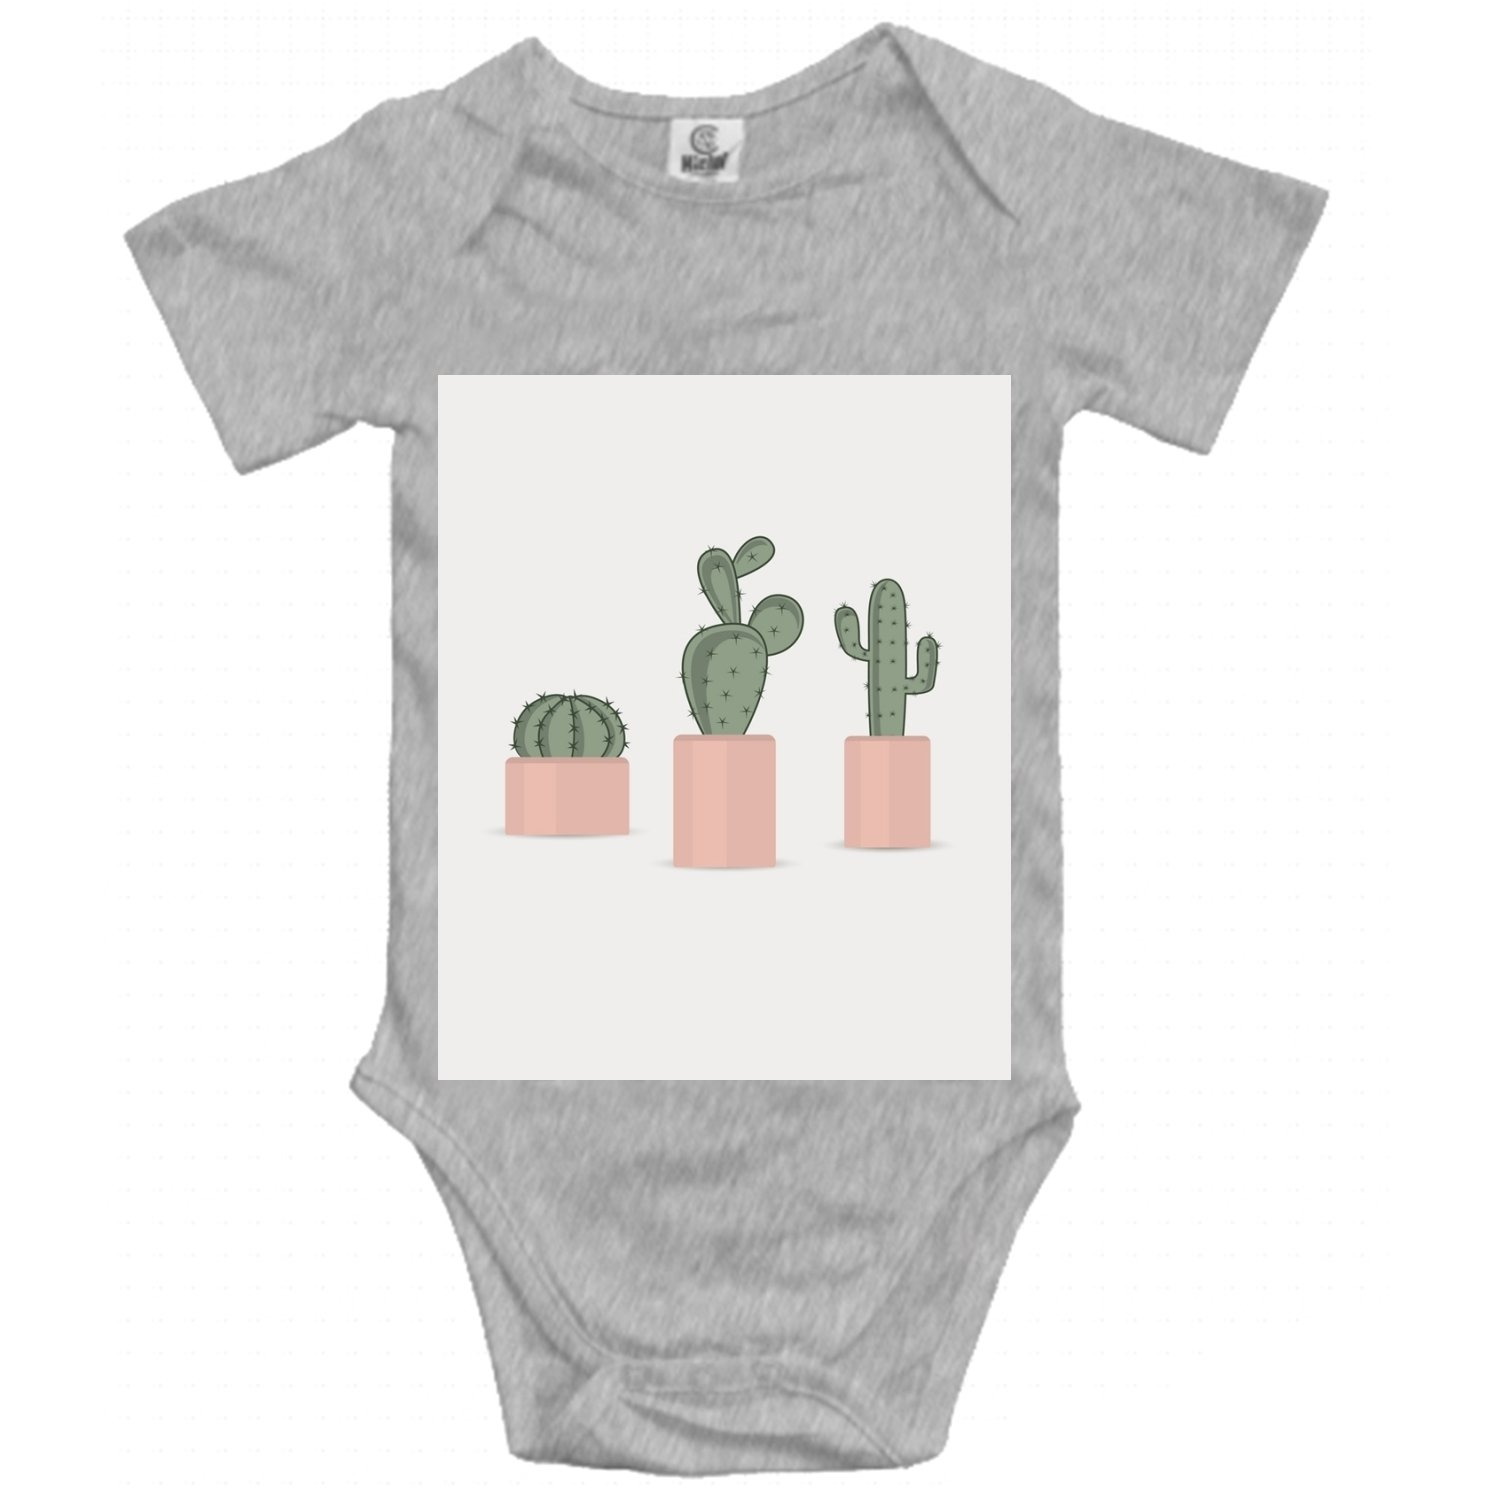 f1d29e03f5c0 Amazon.com  Cactus in A Flower Baby Cotton Short Sleeve Bodysuit ...